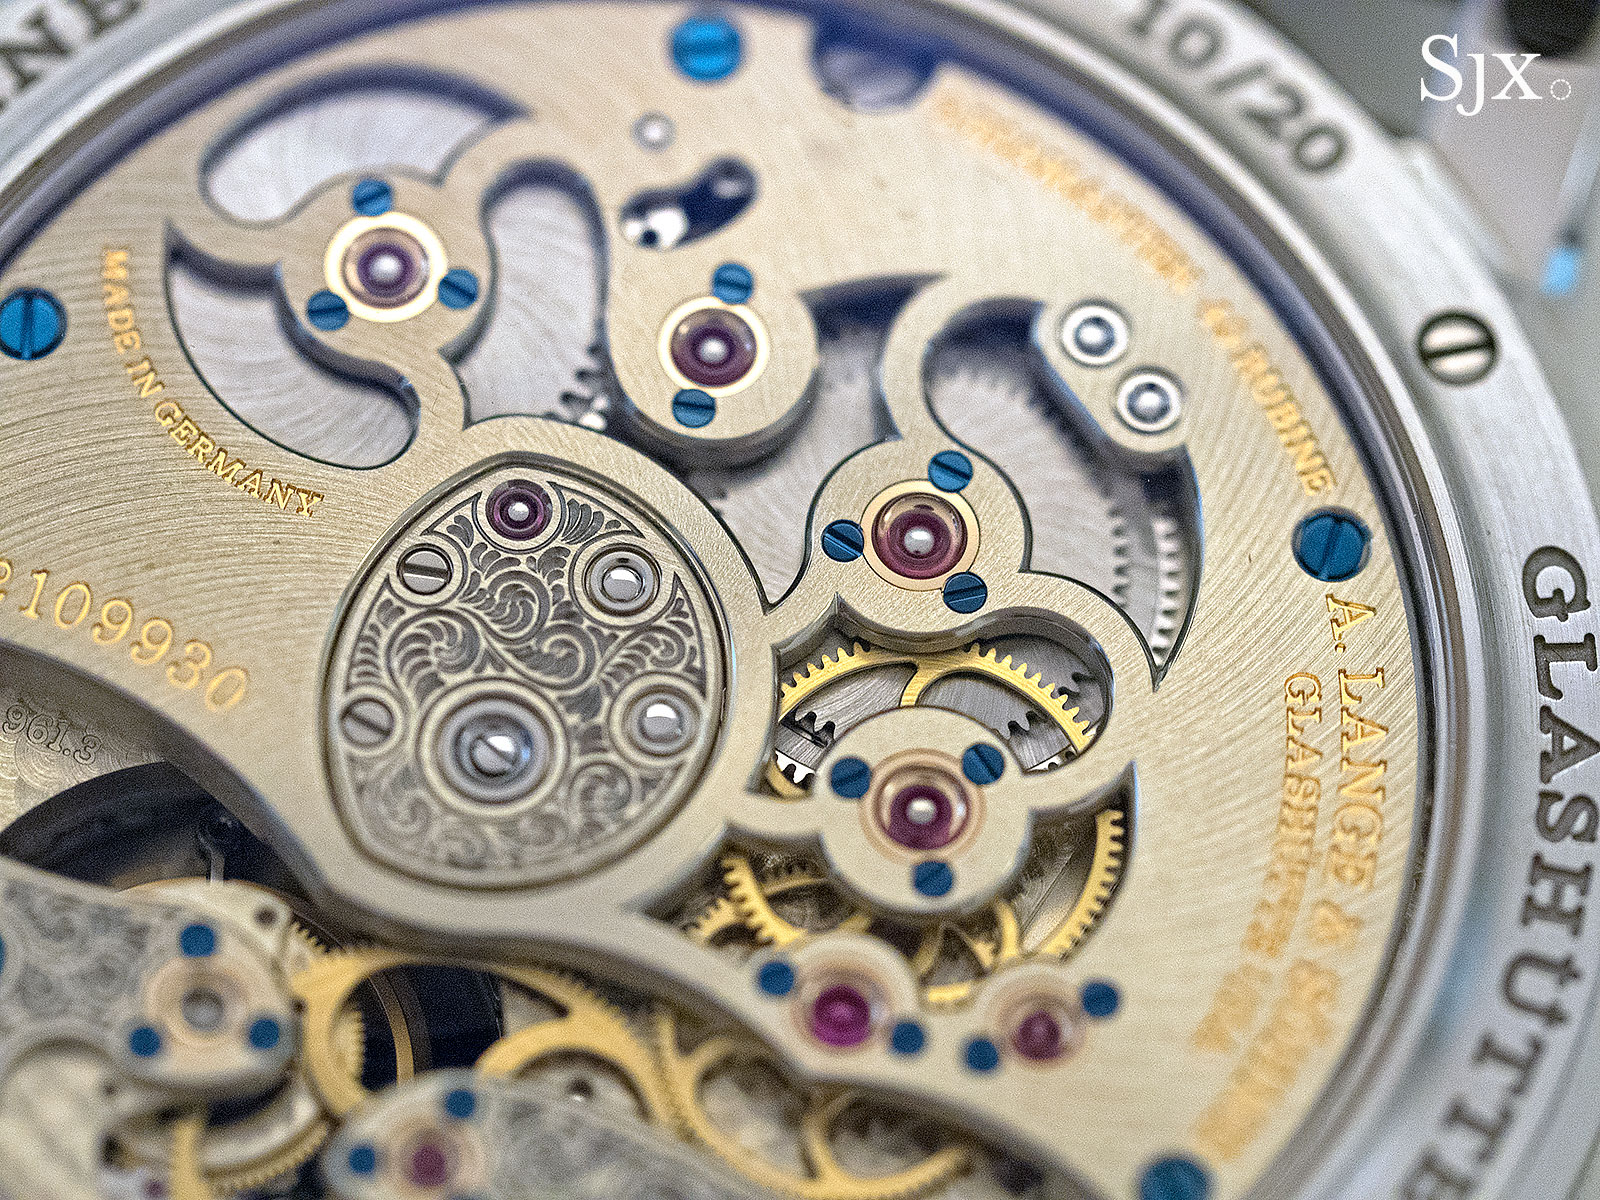 Lange 1 Tourbillon Handwerkskunst Phillips 4